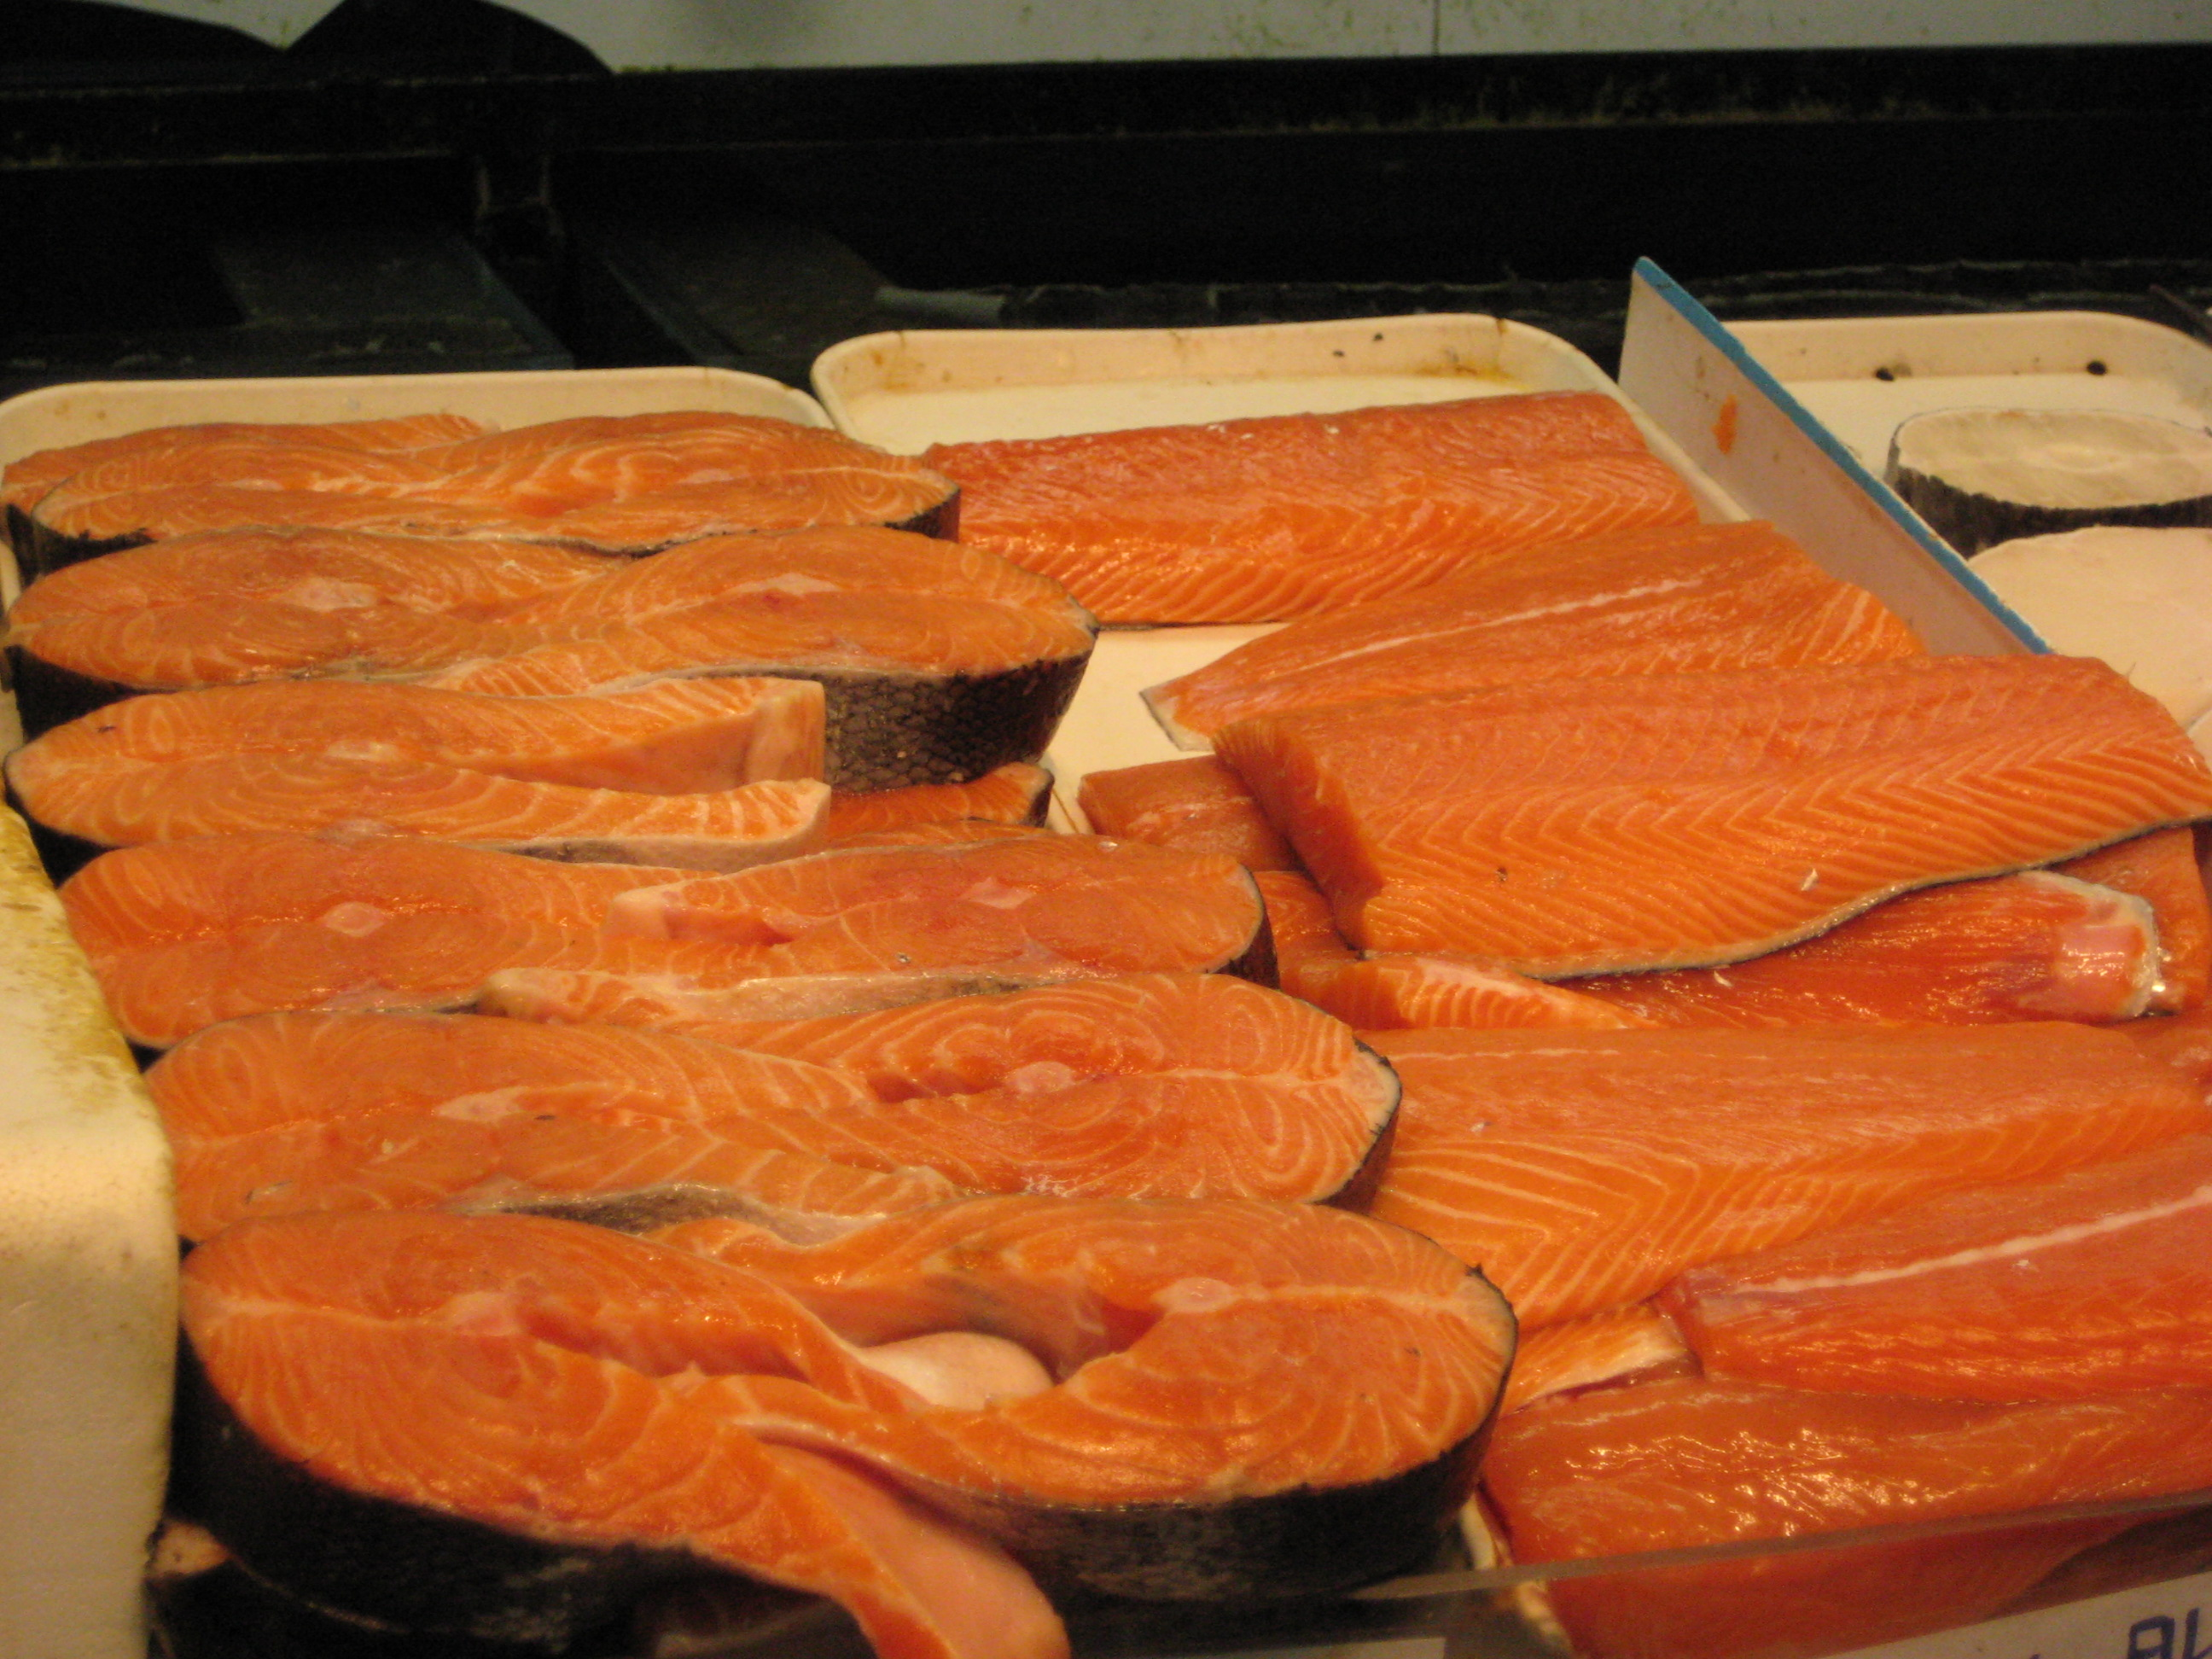 Genetically modified salmon may soon be in stores near you.